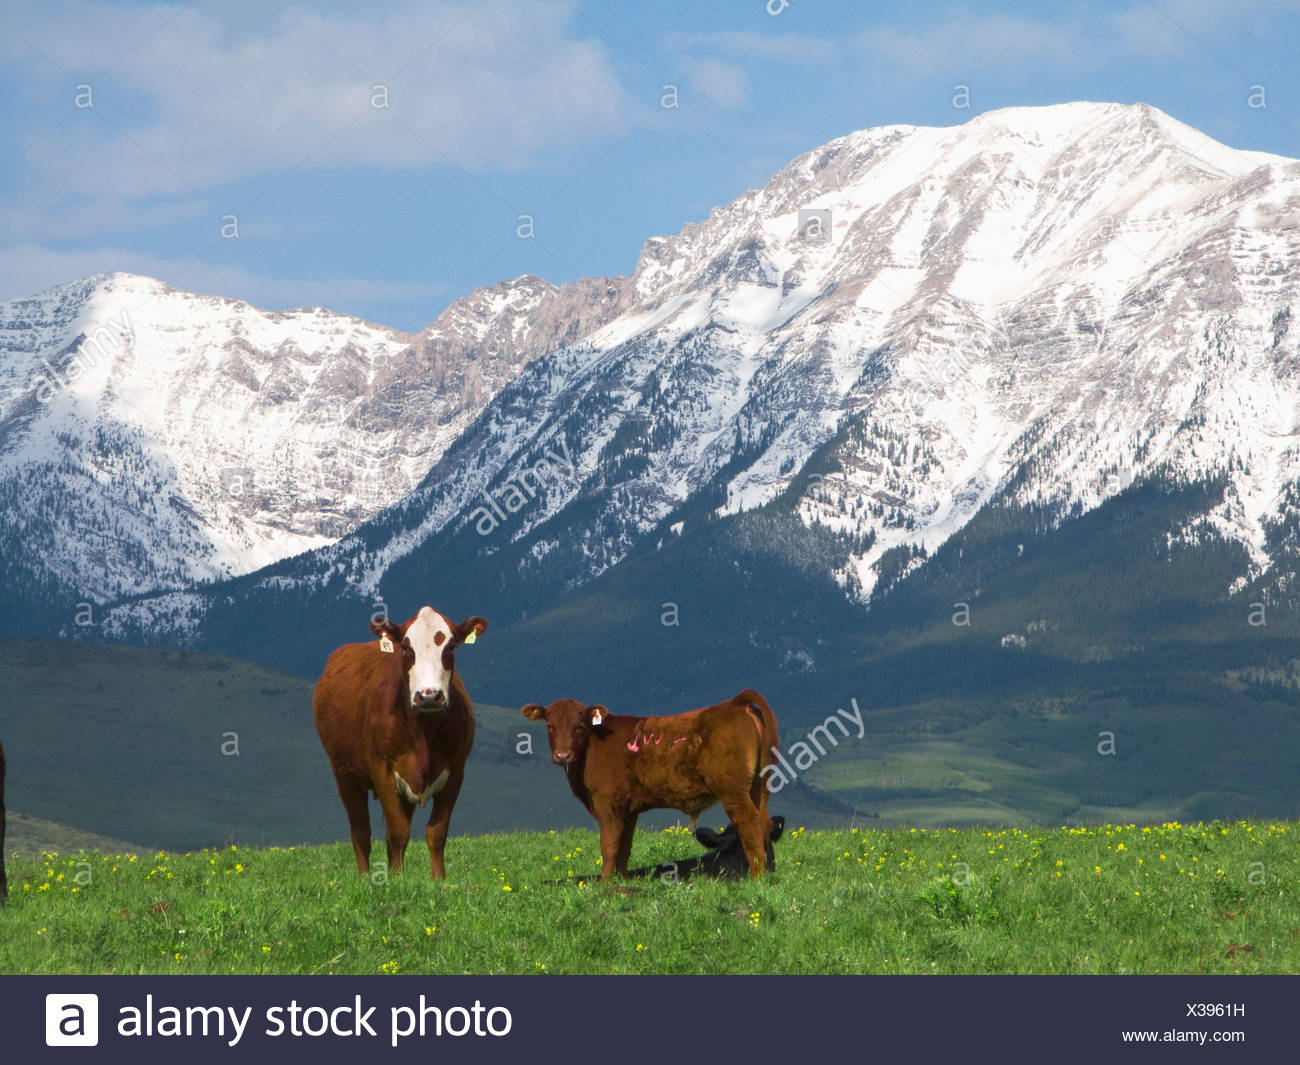 Livestock - Crossbred beef cow on a foothill pasture with snow covered Canadian Rockies in the background / Alberta, Canada. - Stock Image